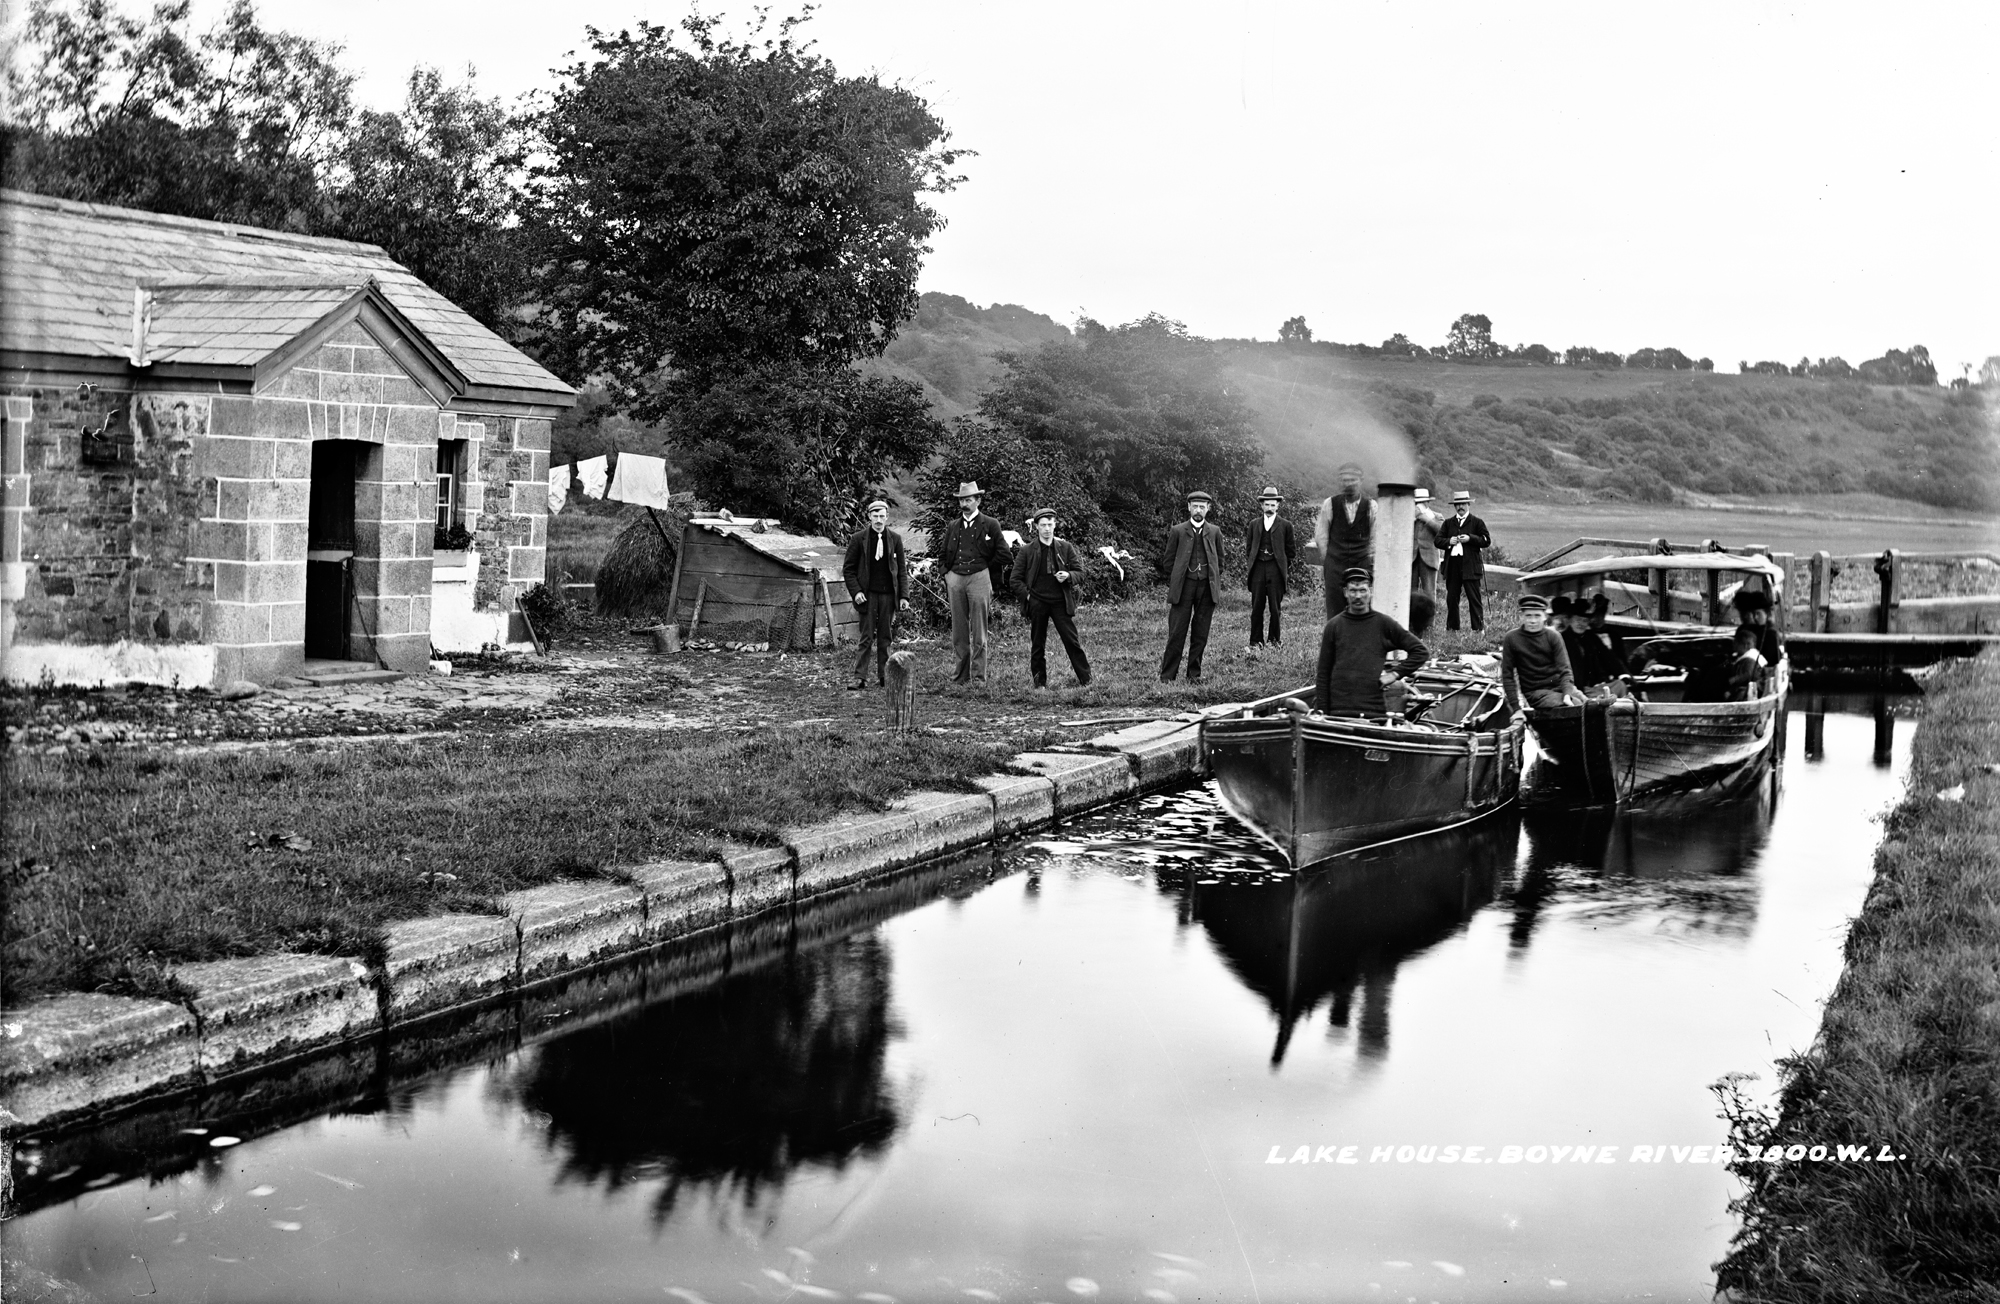 Boyne Valley: Lake House, Boyne Valley, Co. Louth